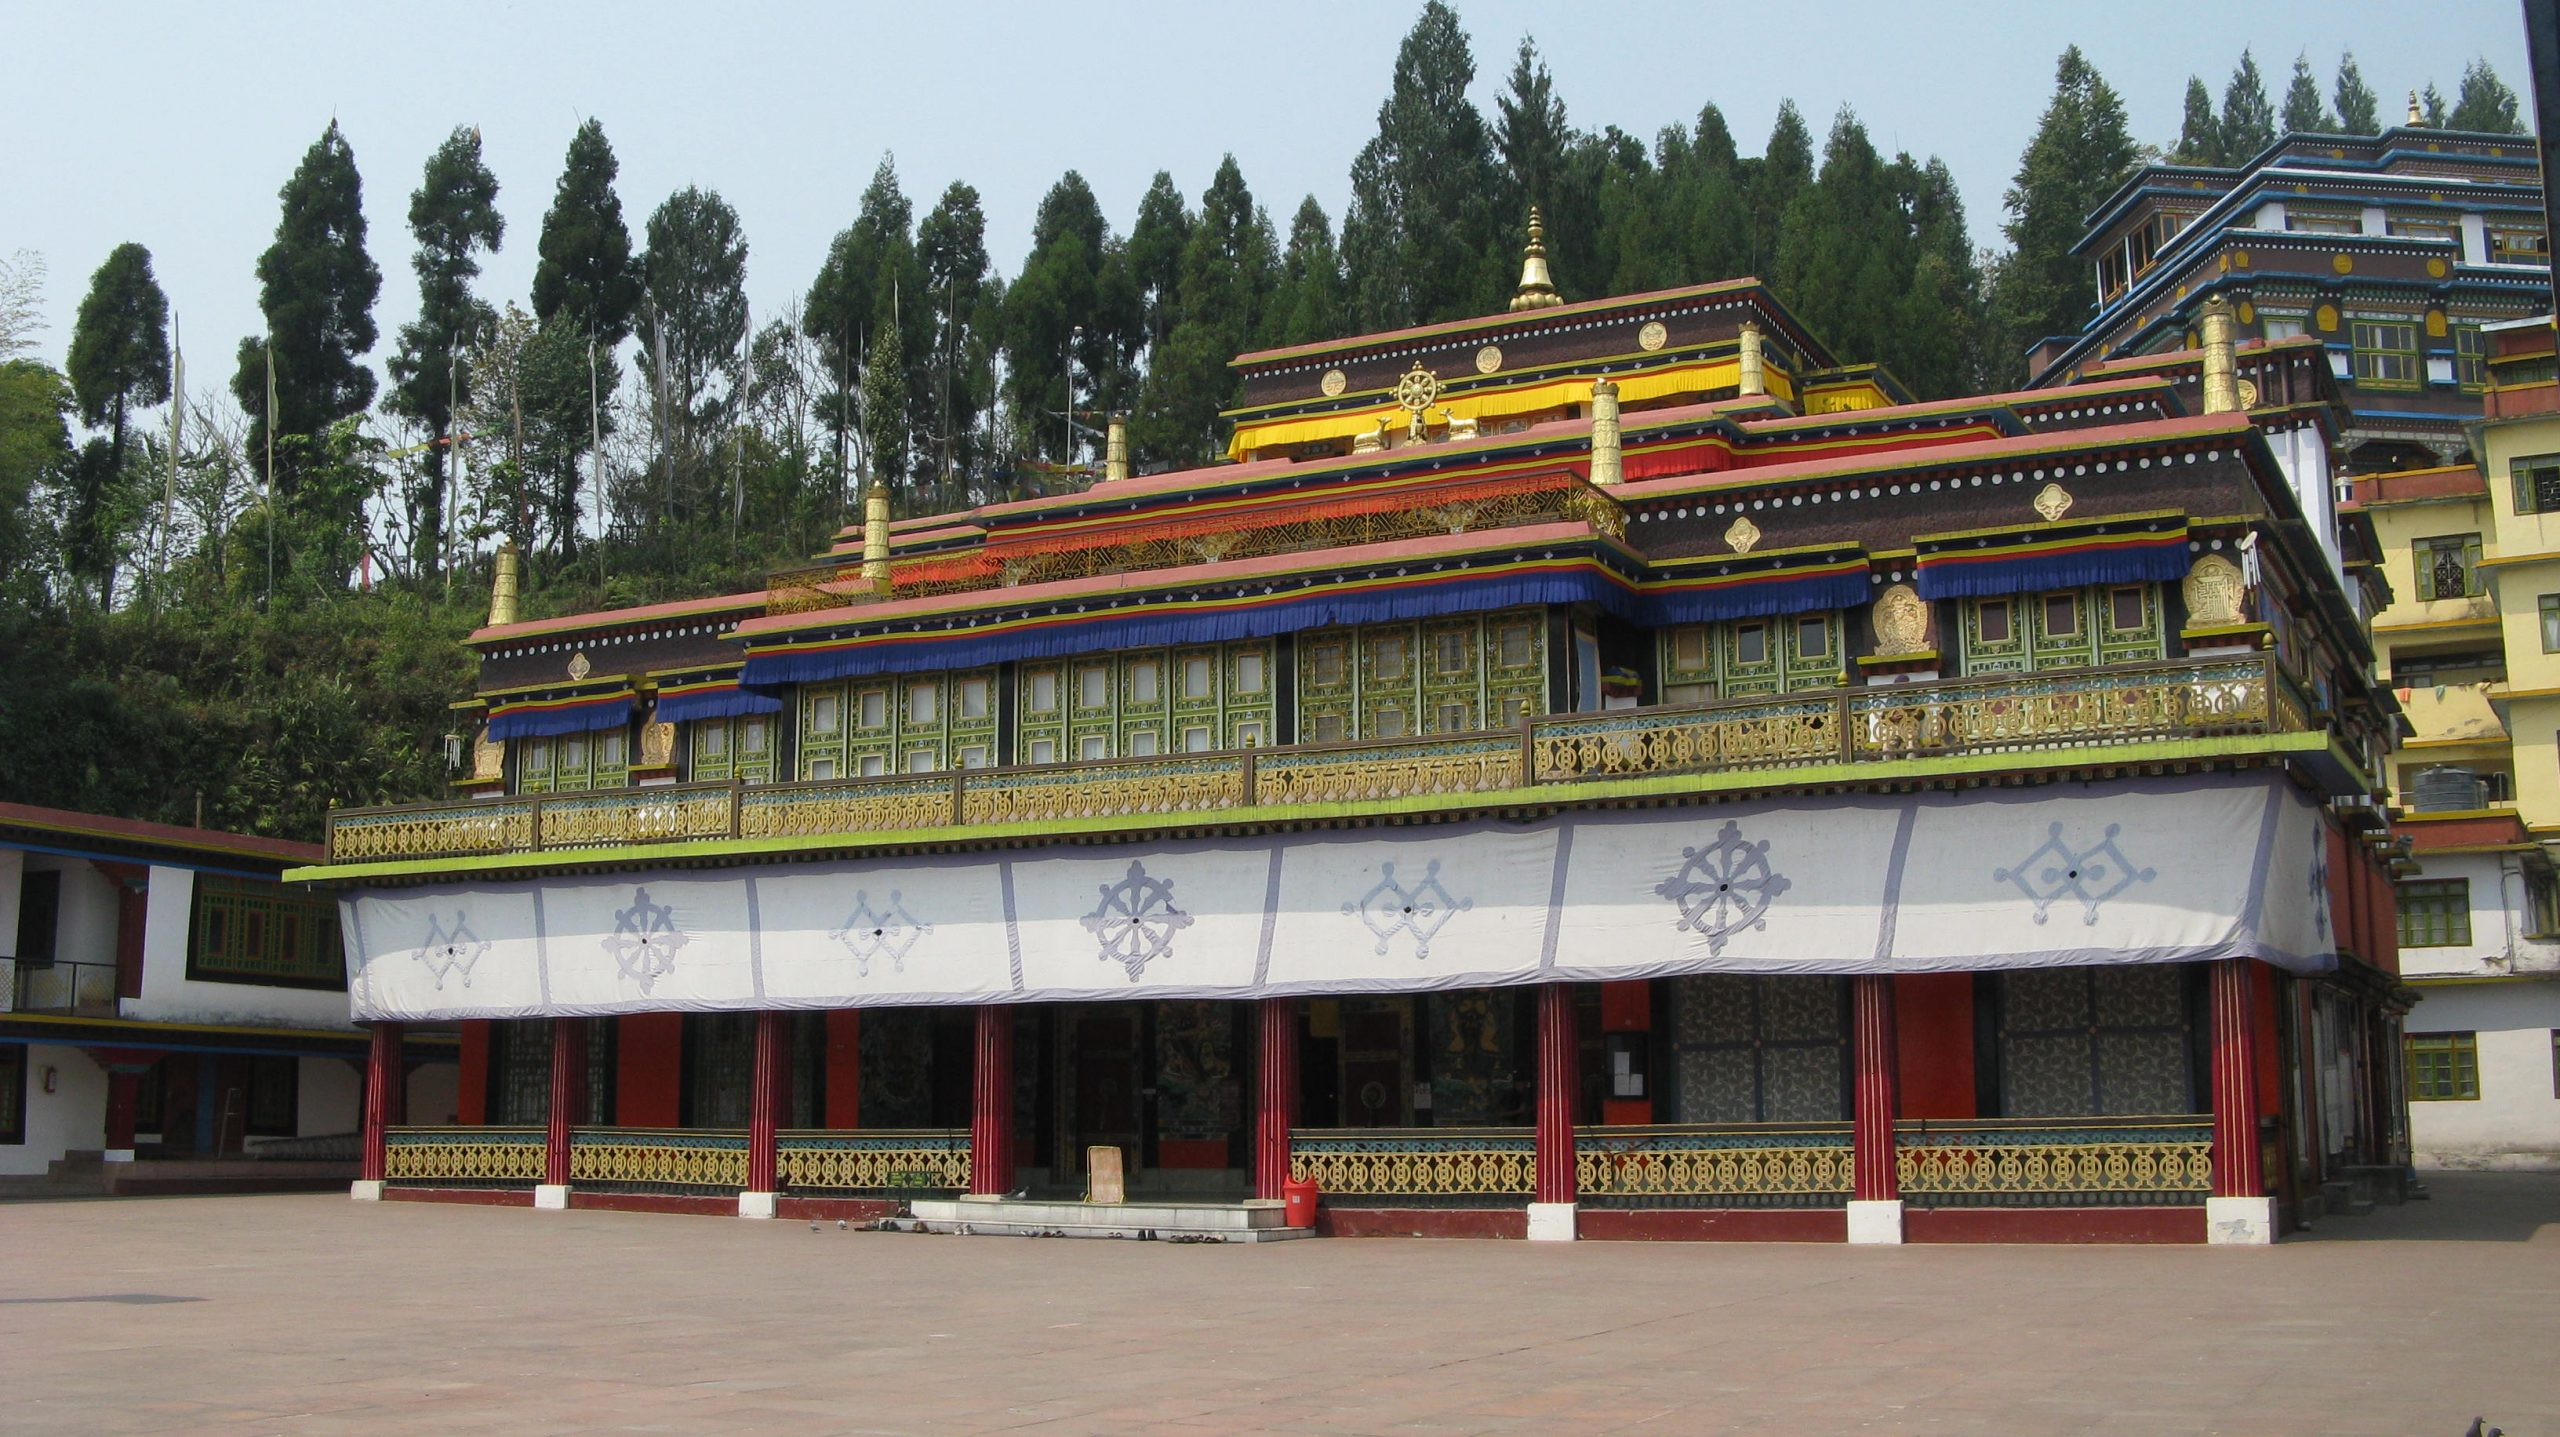 Rumtek Monastery Things To Do And See In The Capital Of Sikkim